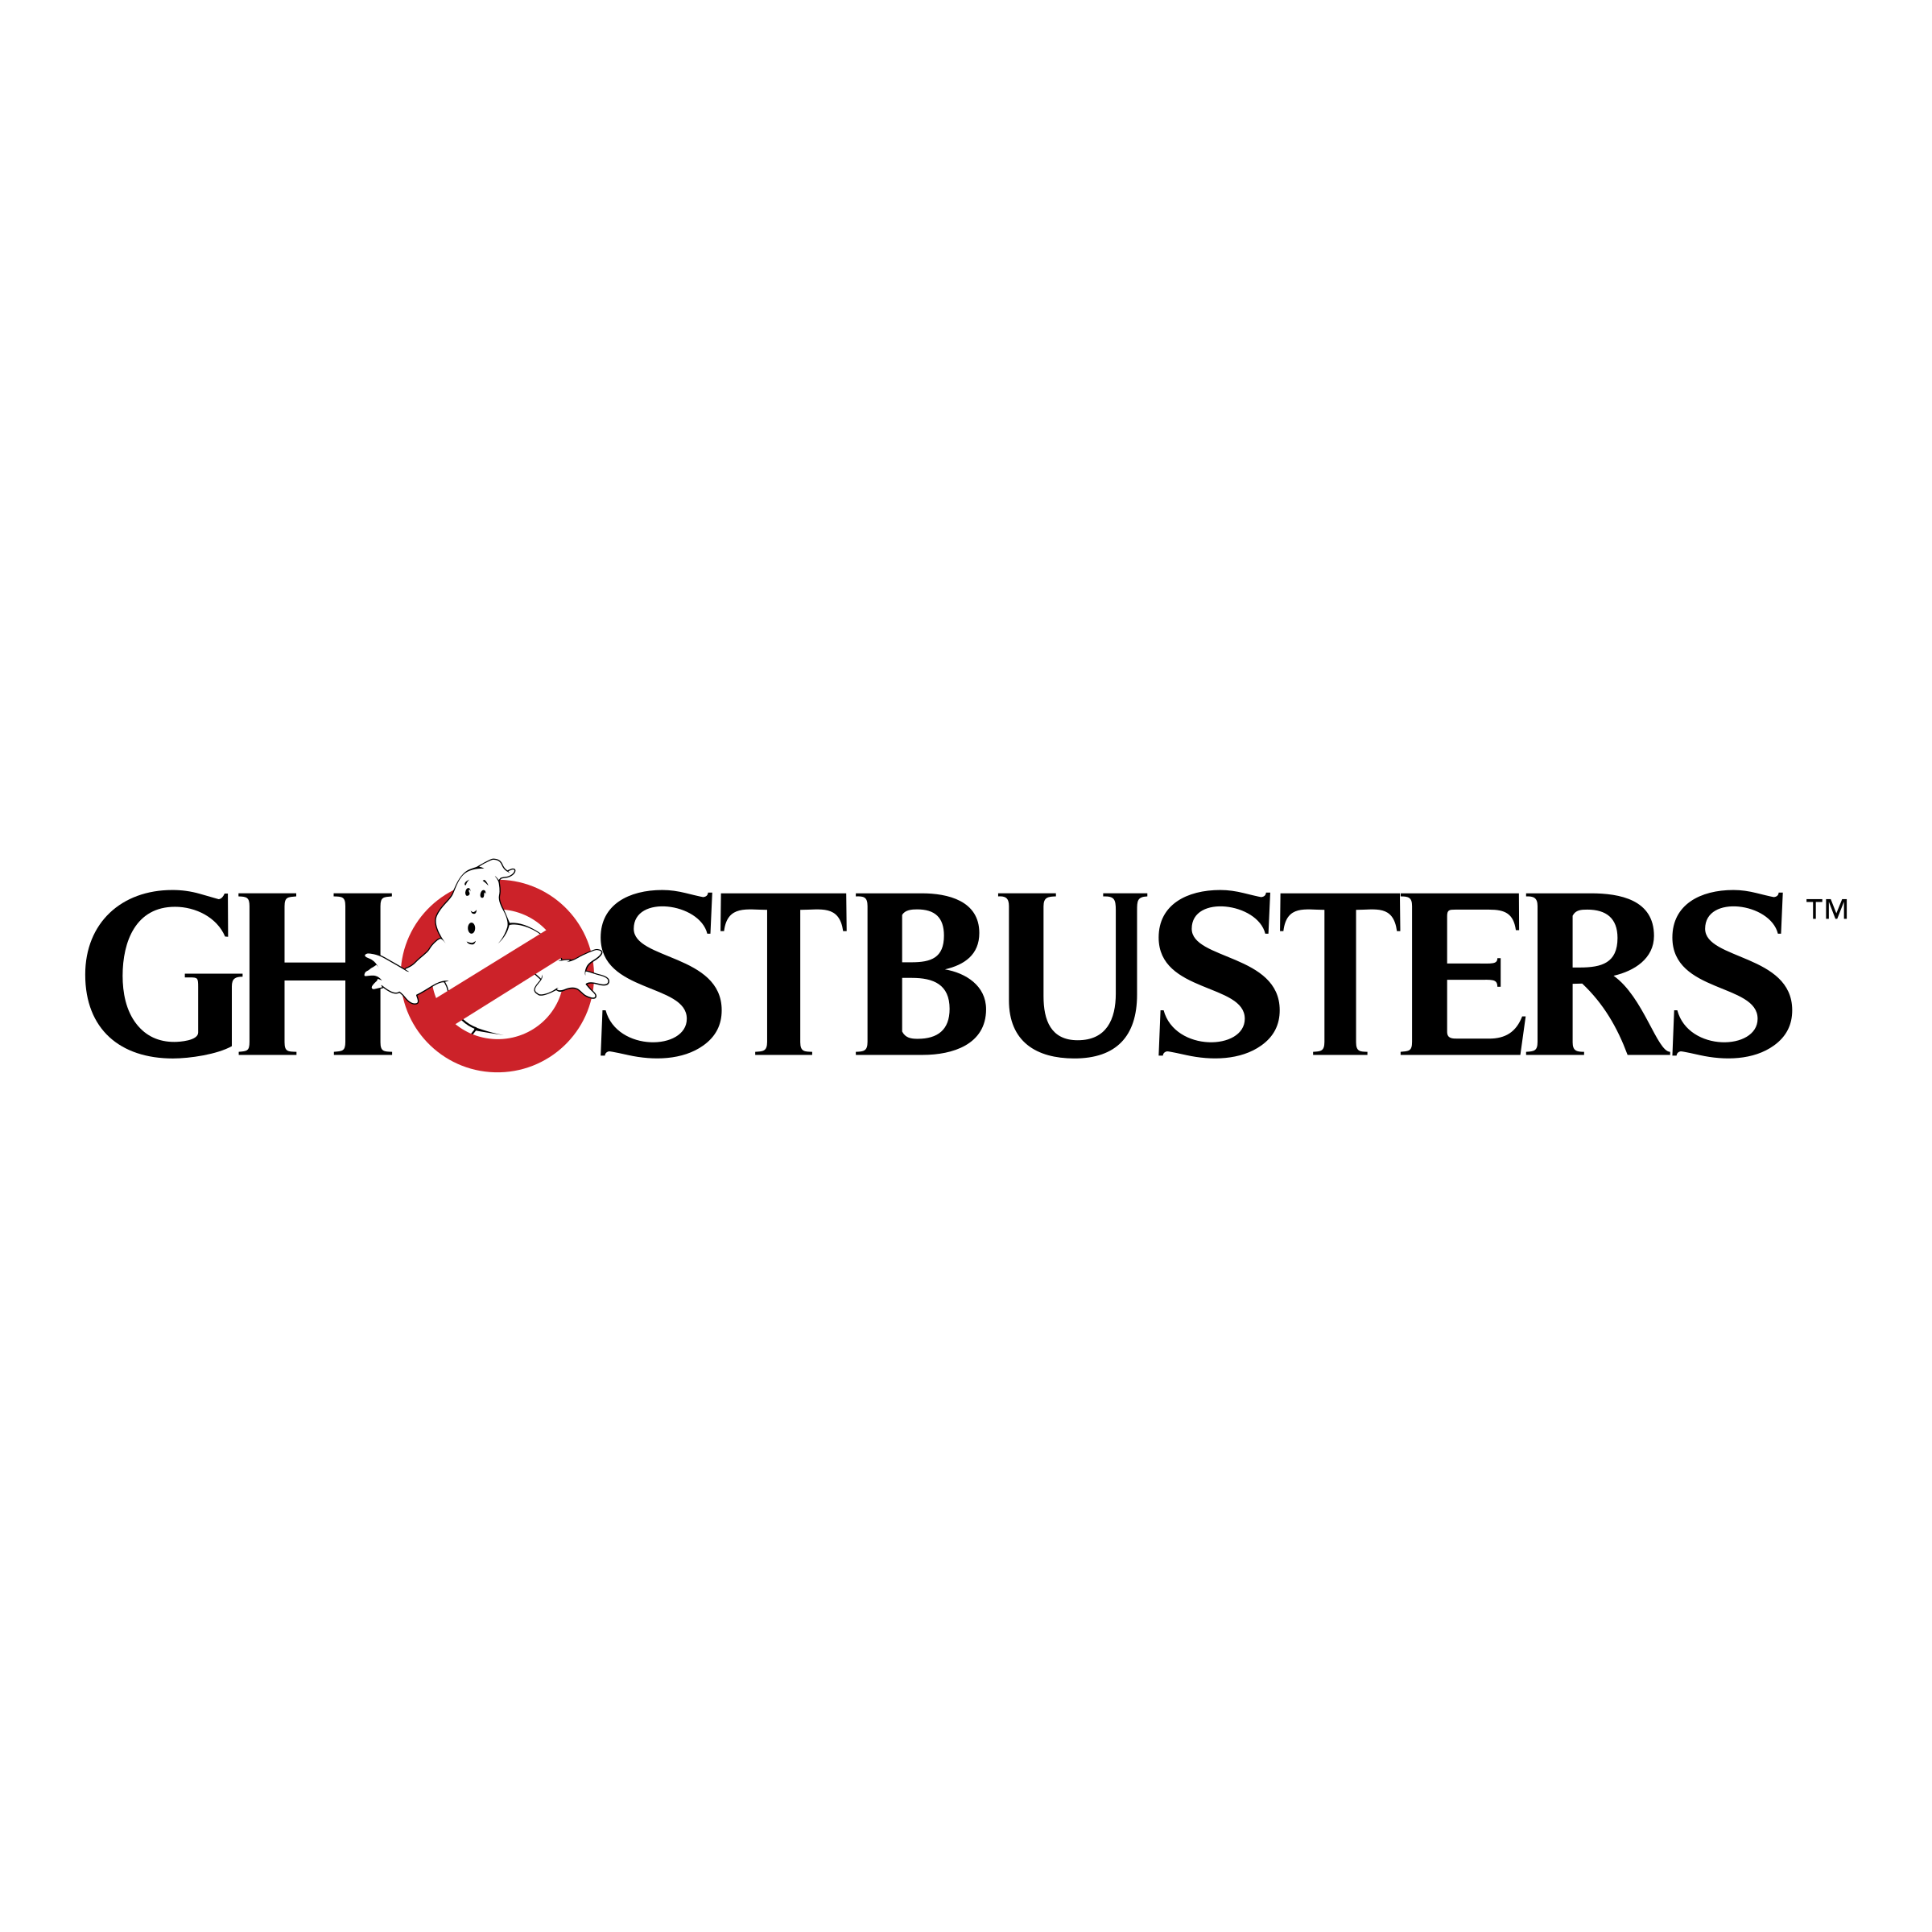 Ghostbusters logo png transparent